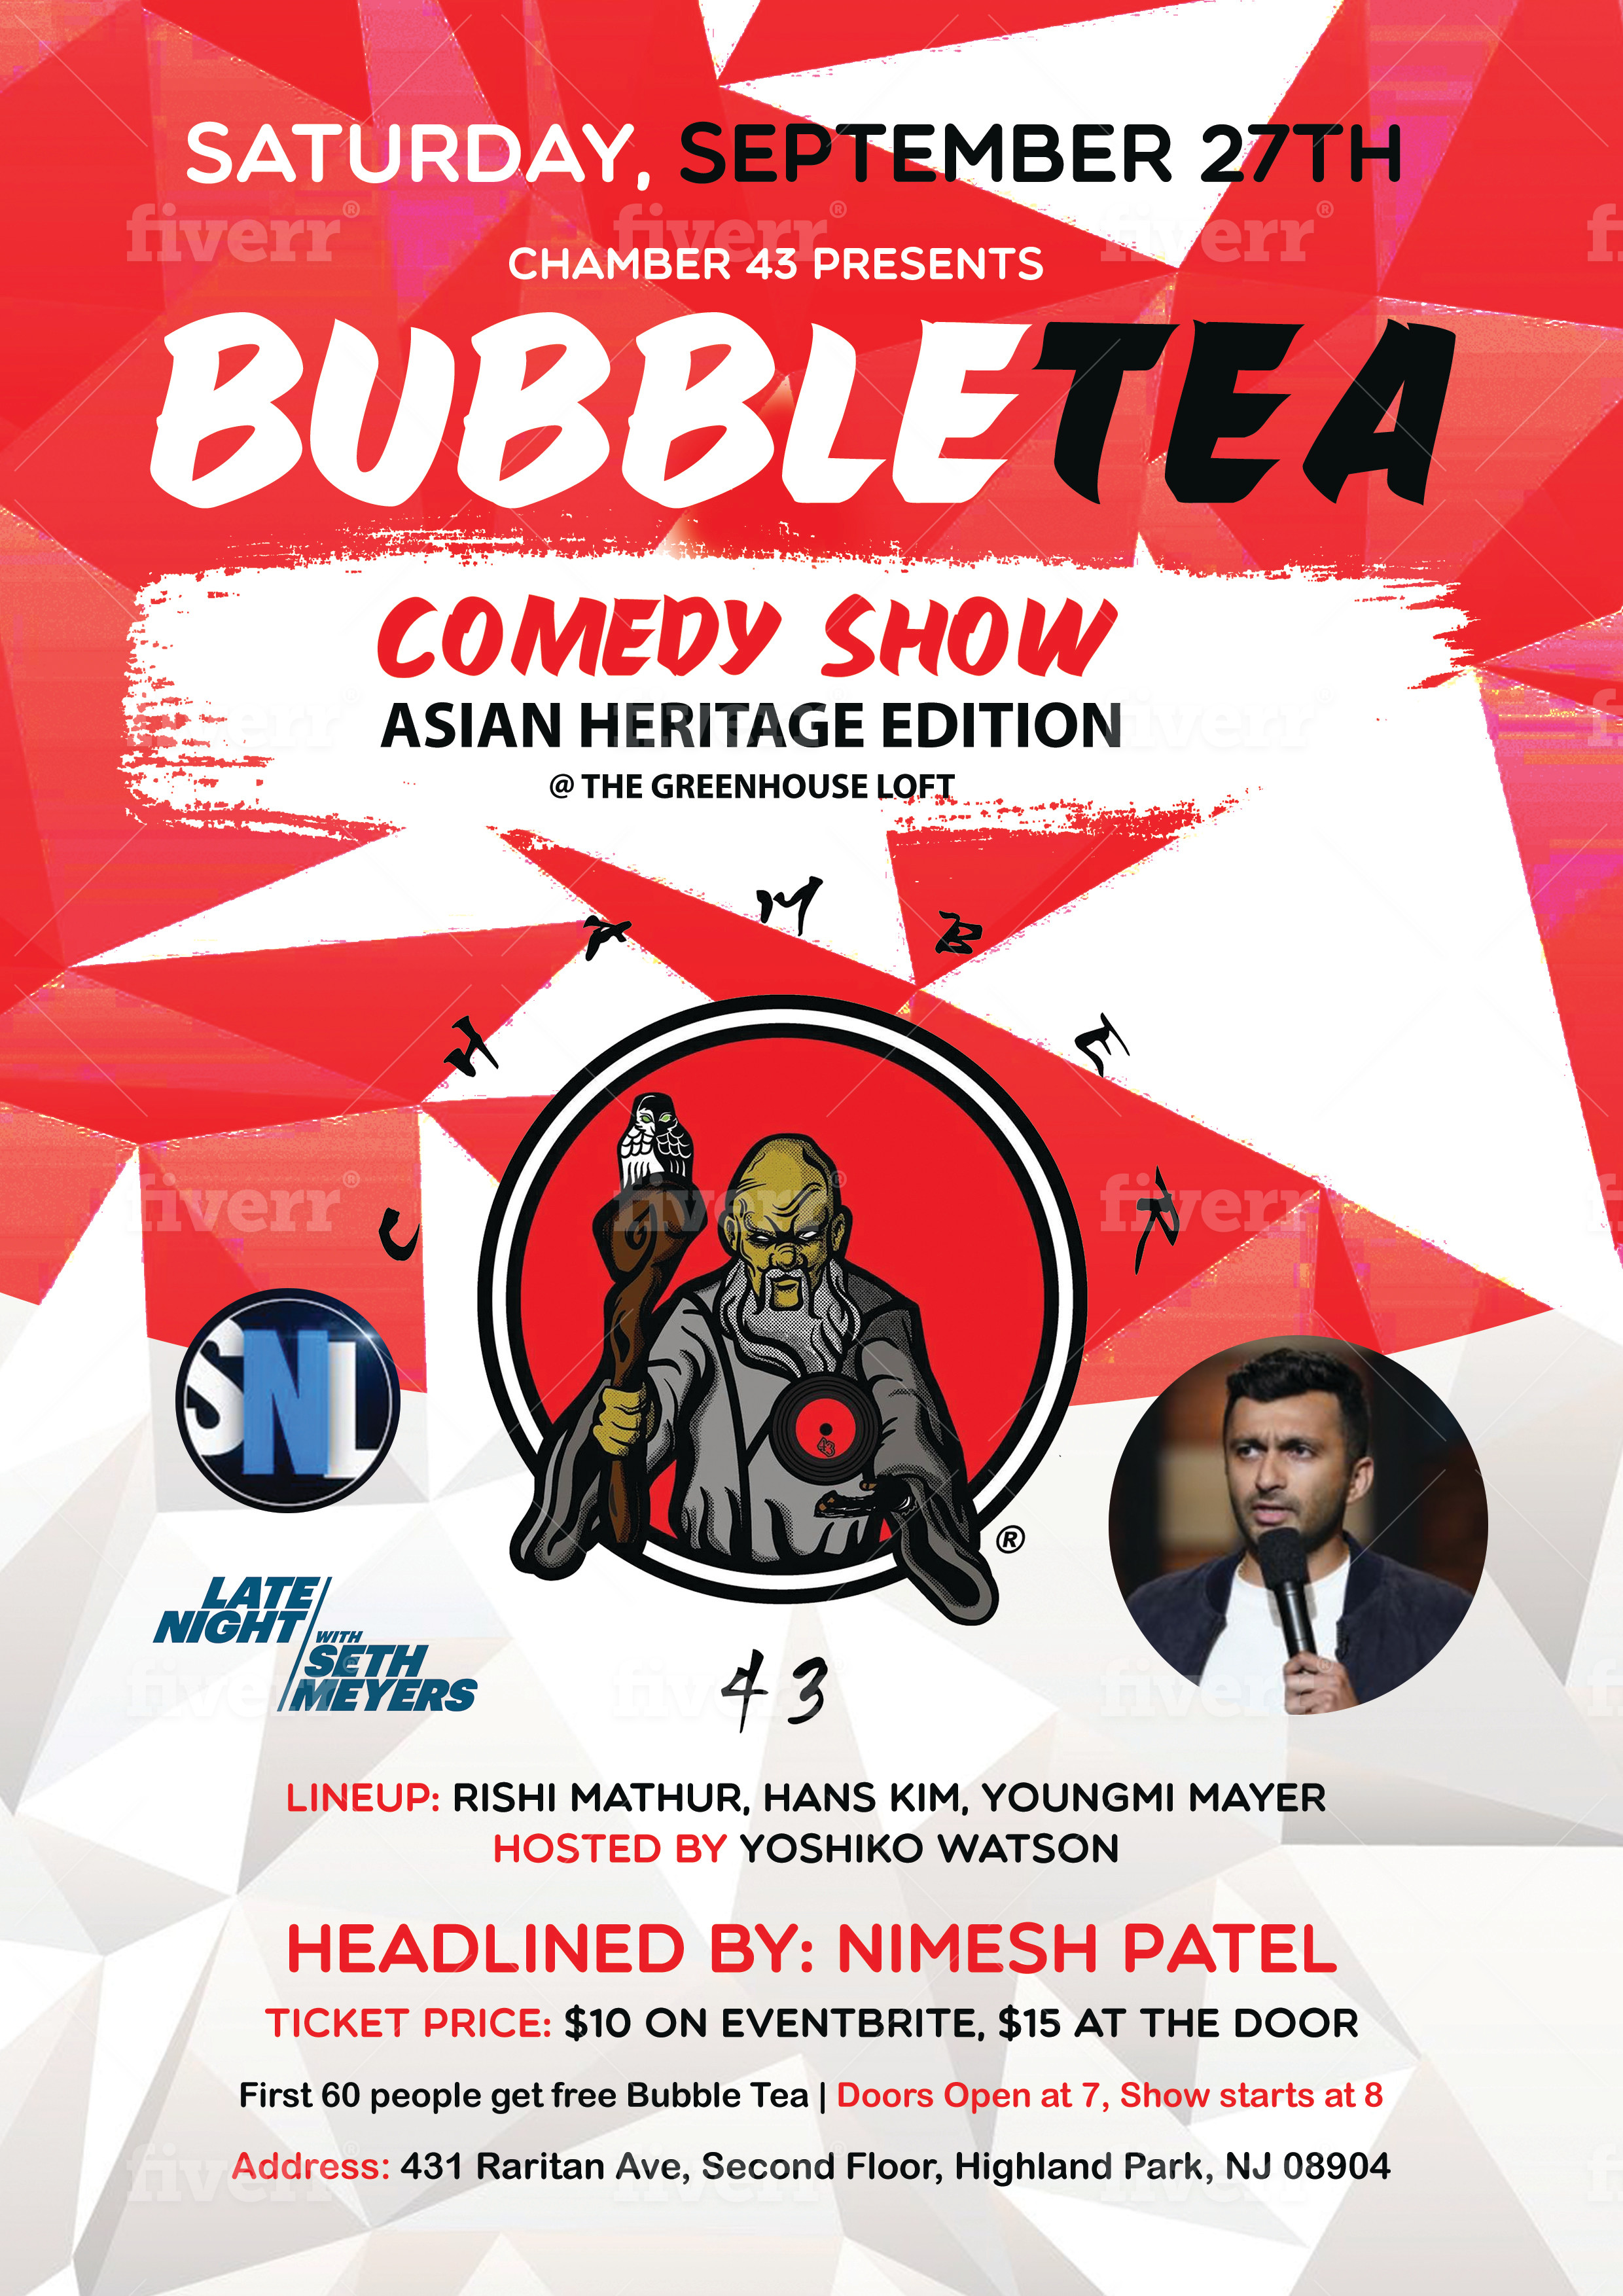 Bubble Tea Comedy Show: Asian Heritage Edition